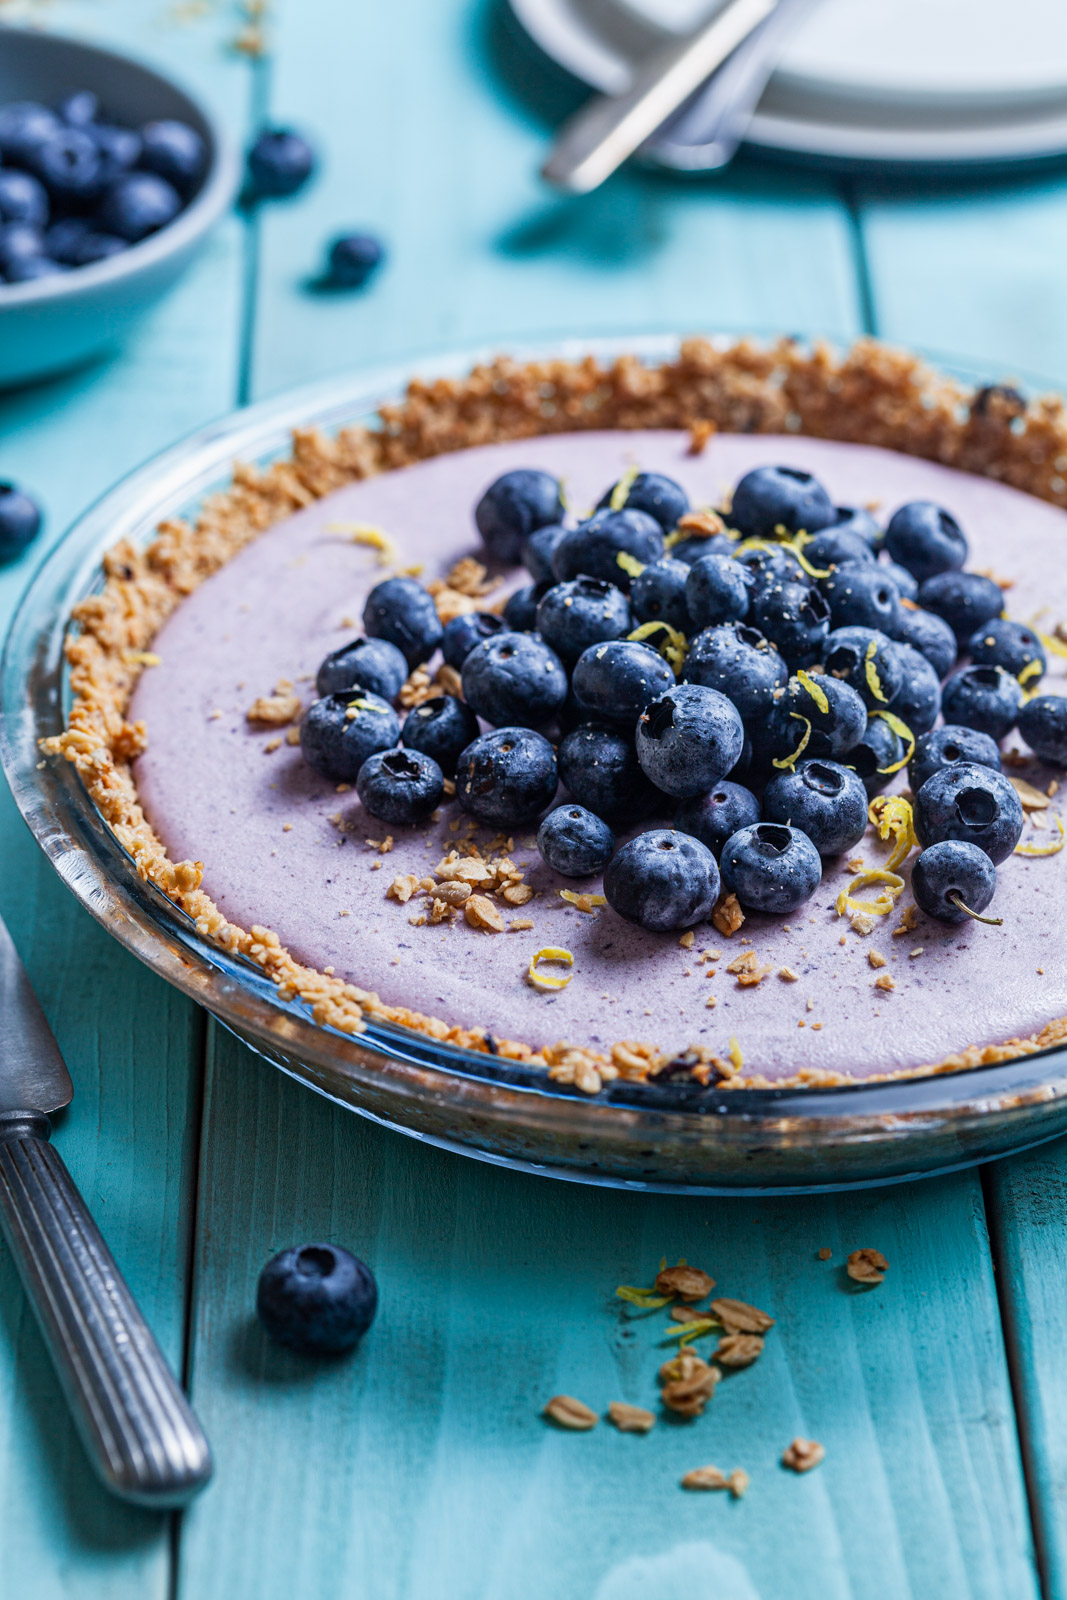 Lemon Blueberry Crunch Pie